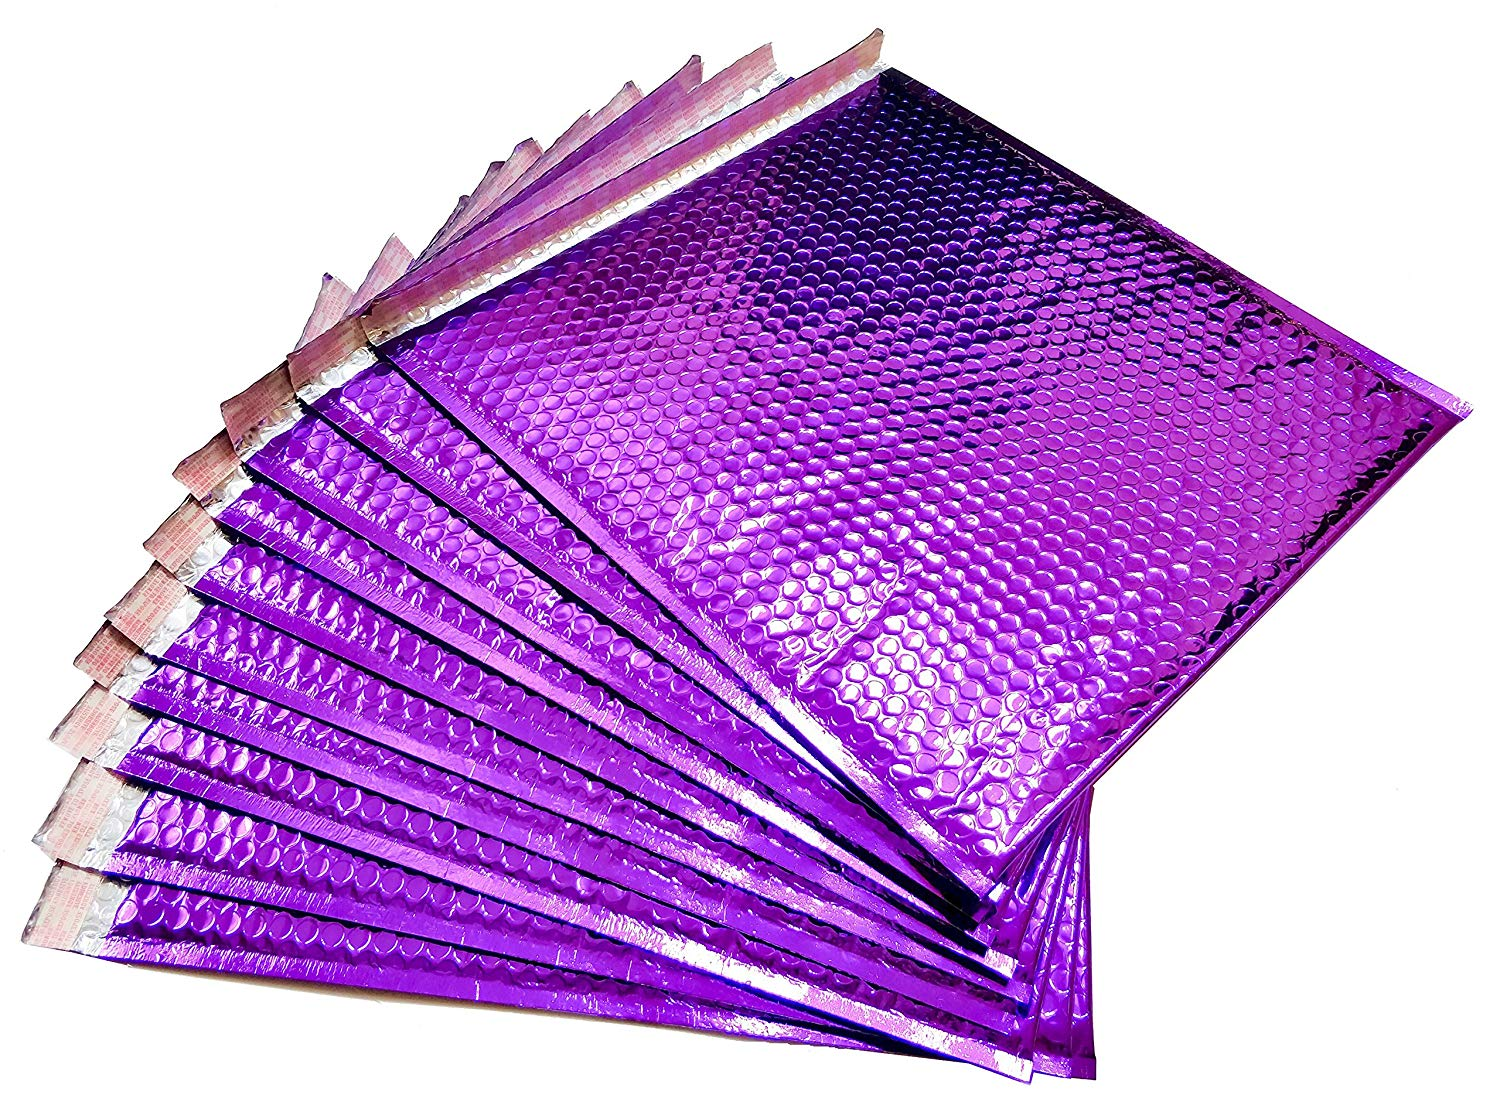 10 Pack Metallic Bubble mailers 7.5 x 11. Purple padded envelopes 7 1/2 x 11. Glamour bubble mailers Peel and Seal. Padded mailing envelopes for shipping, packing, packaging.